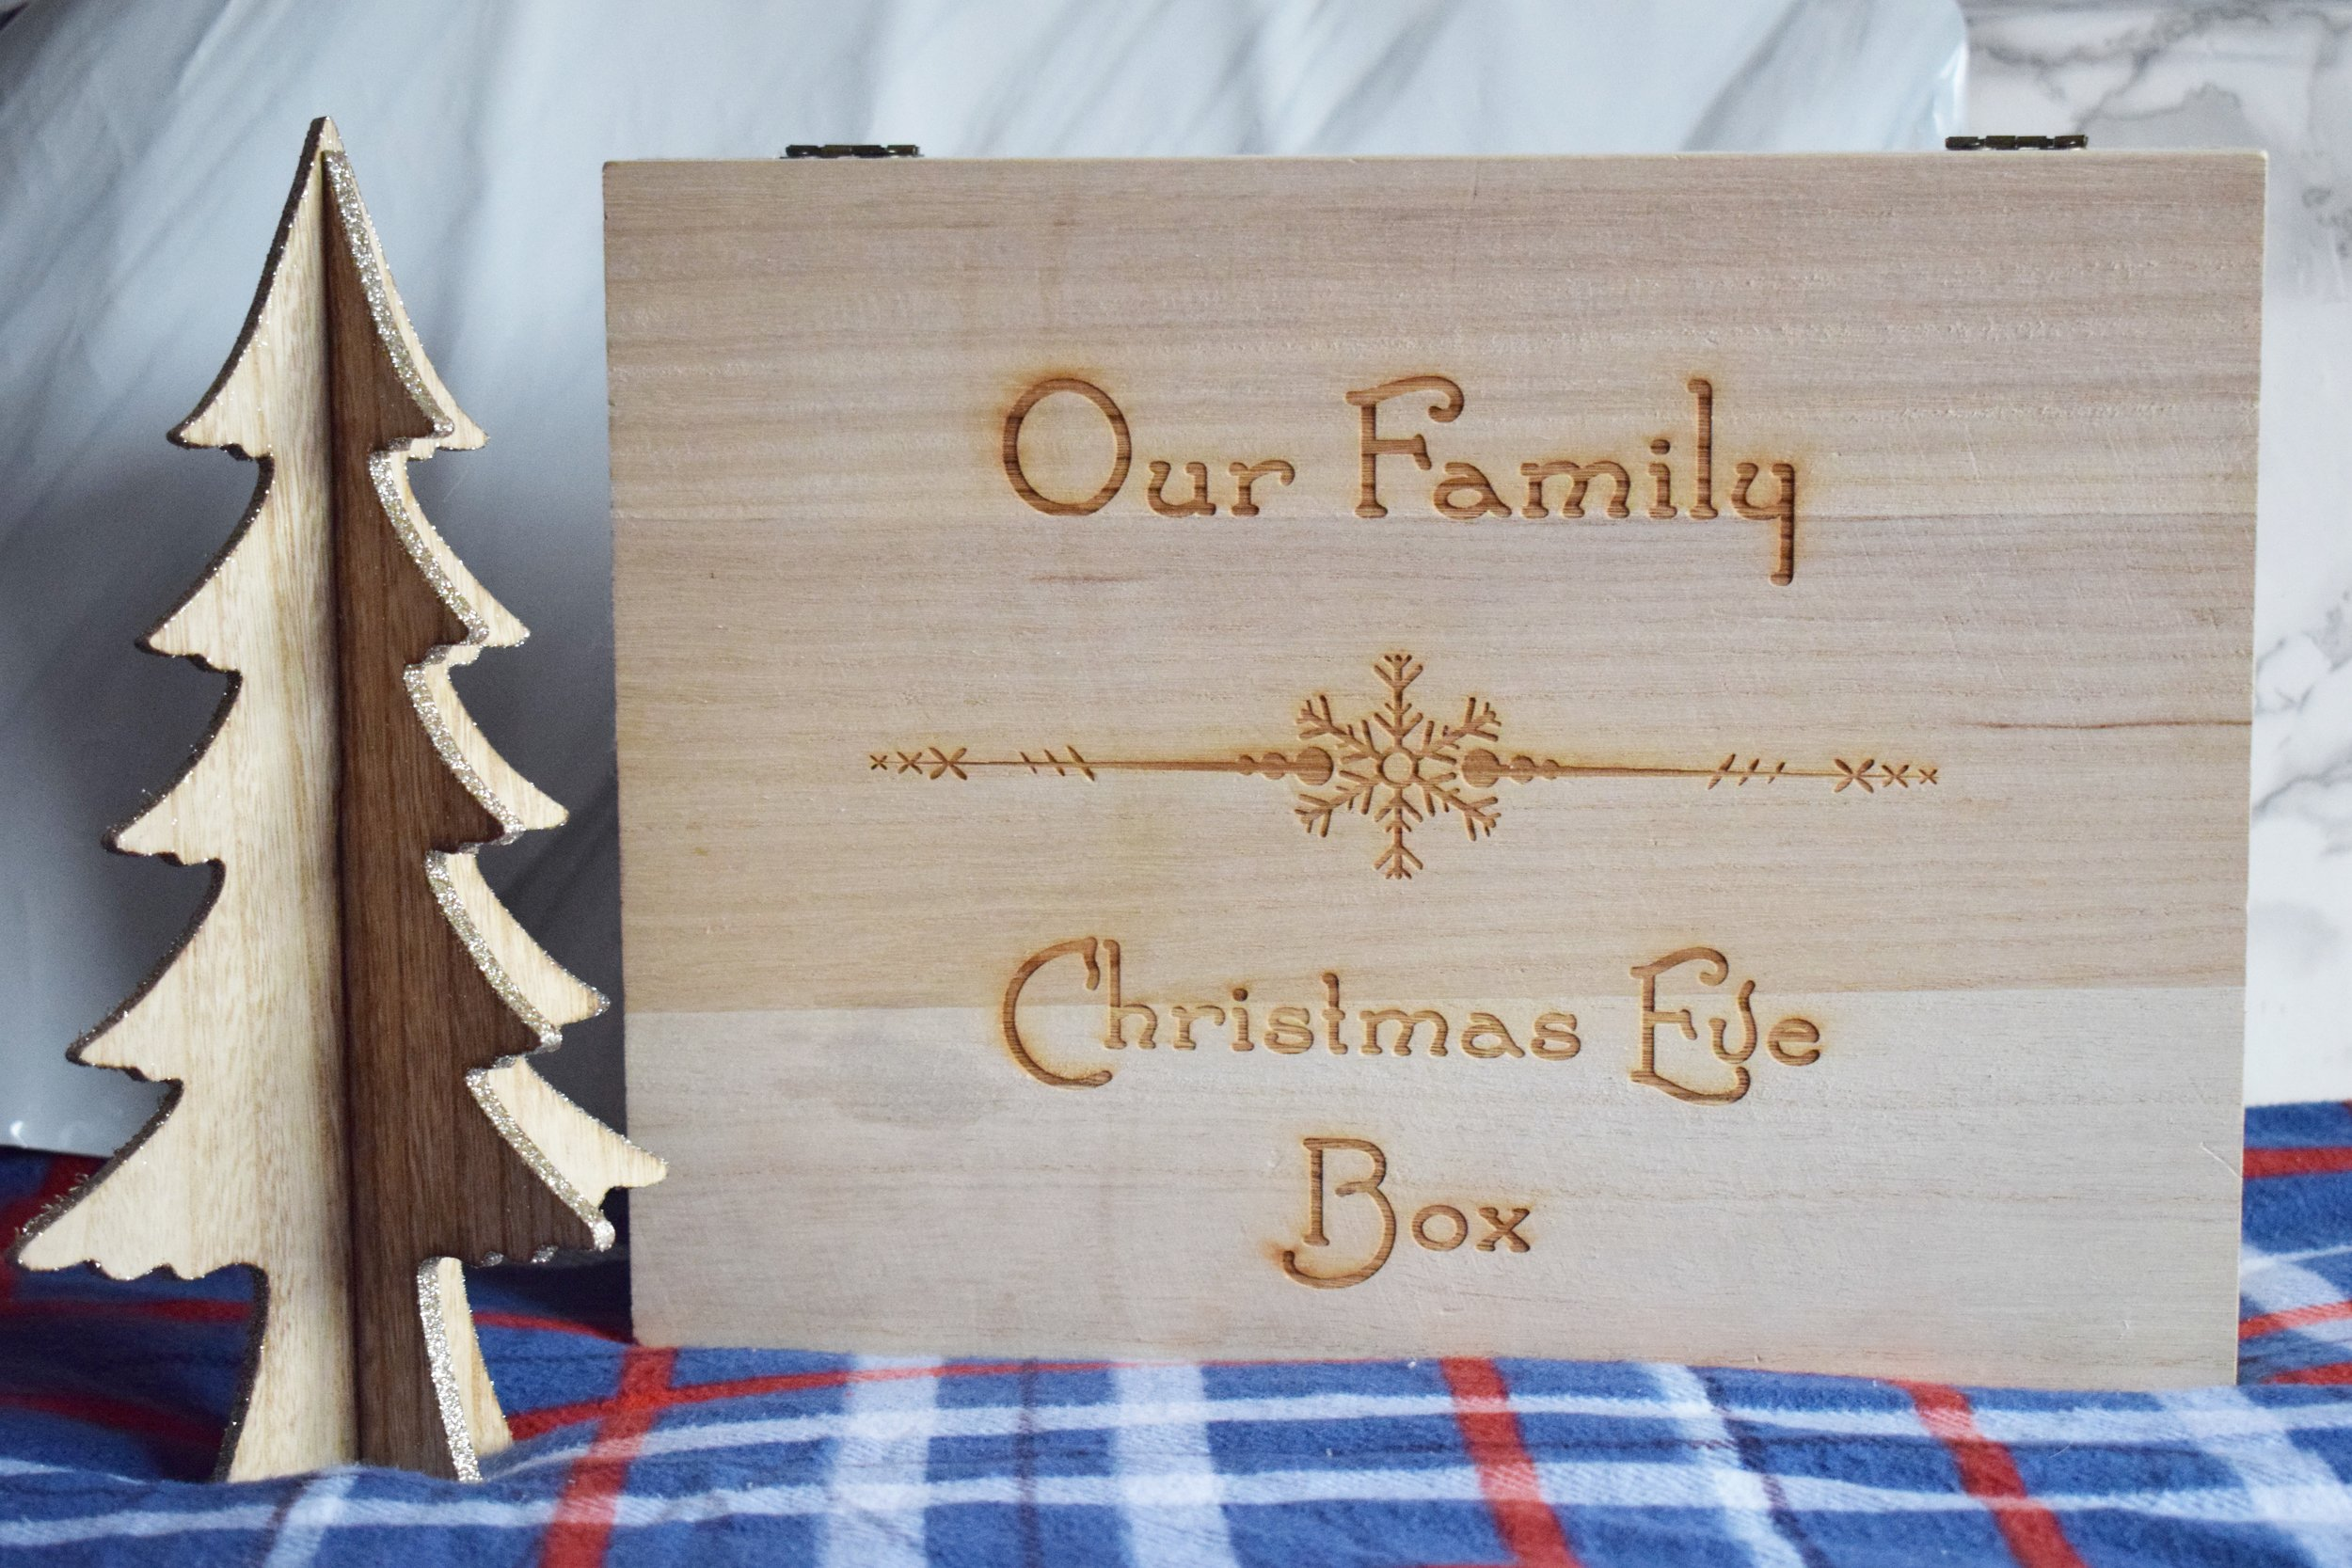 Our family personalised engraved wooden Christmas Eve box